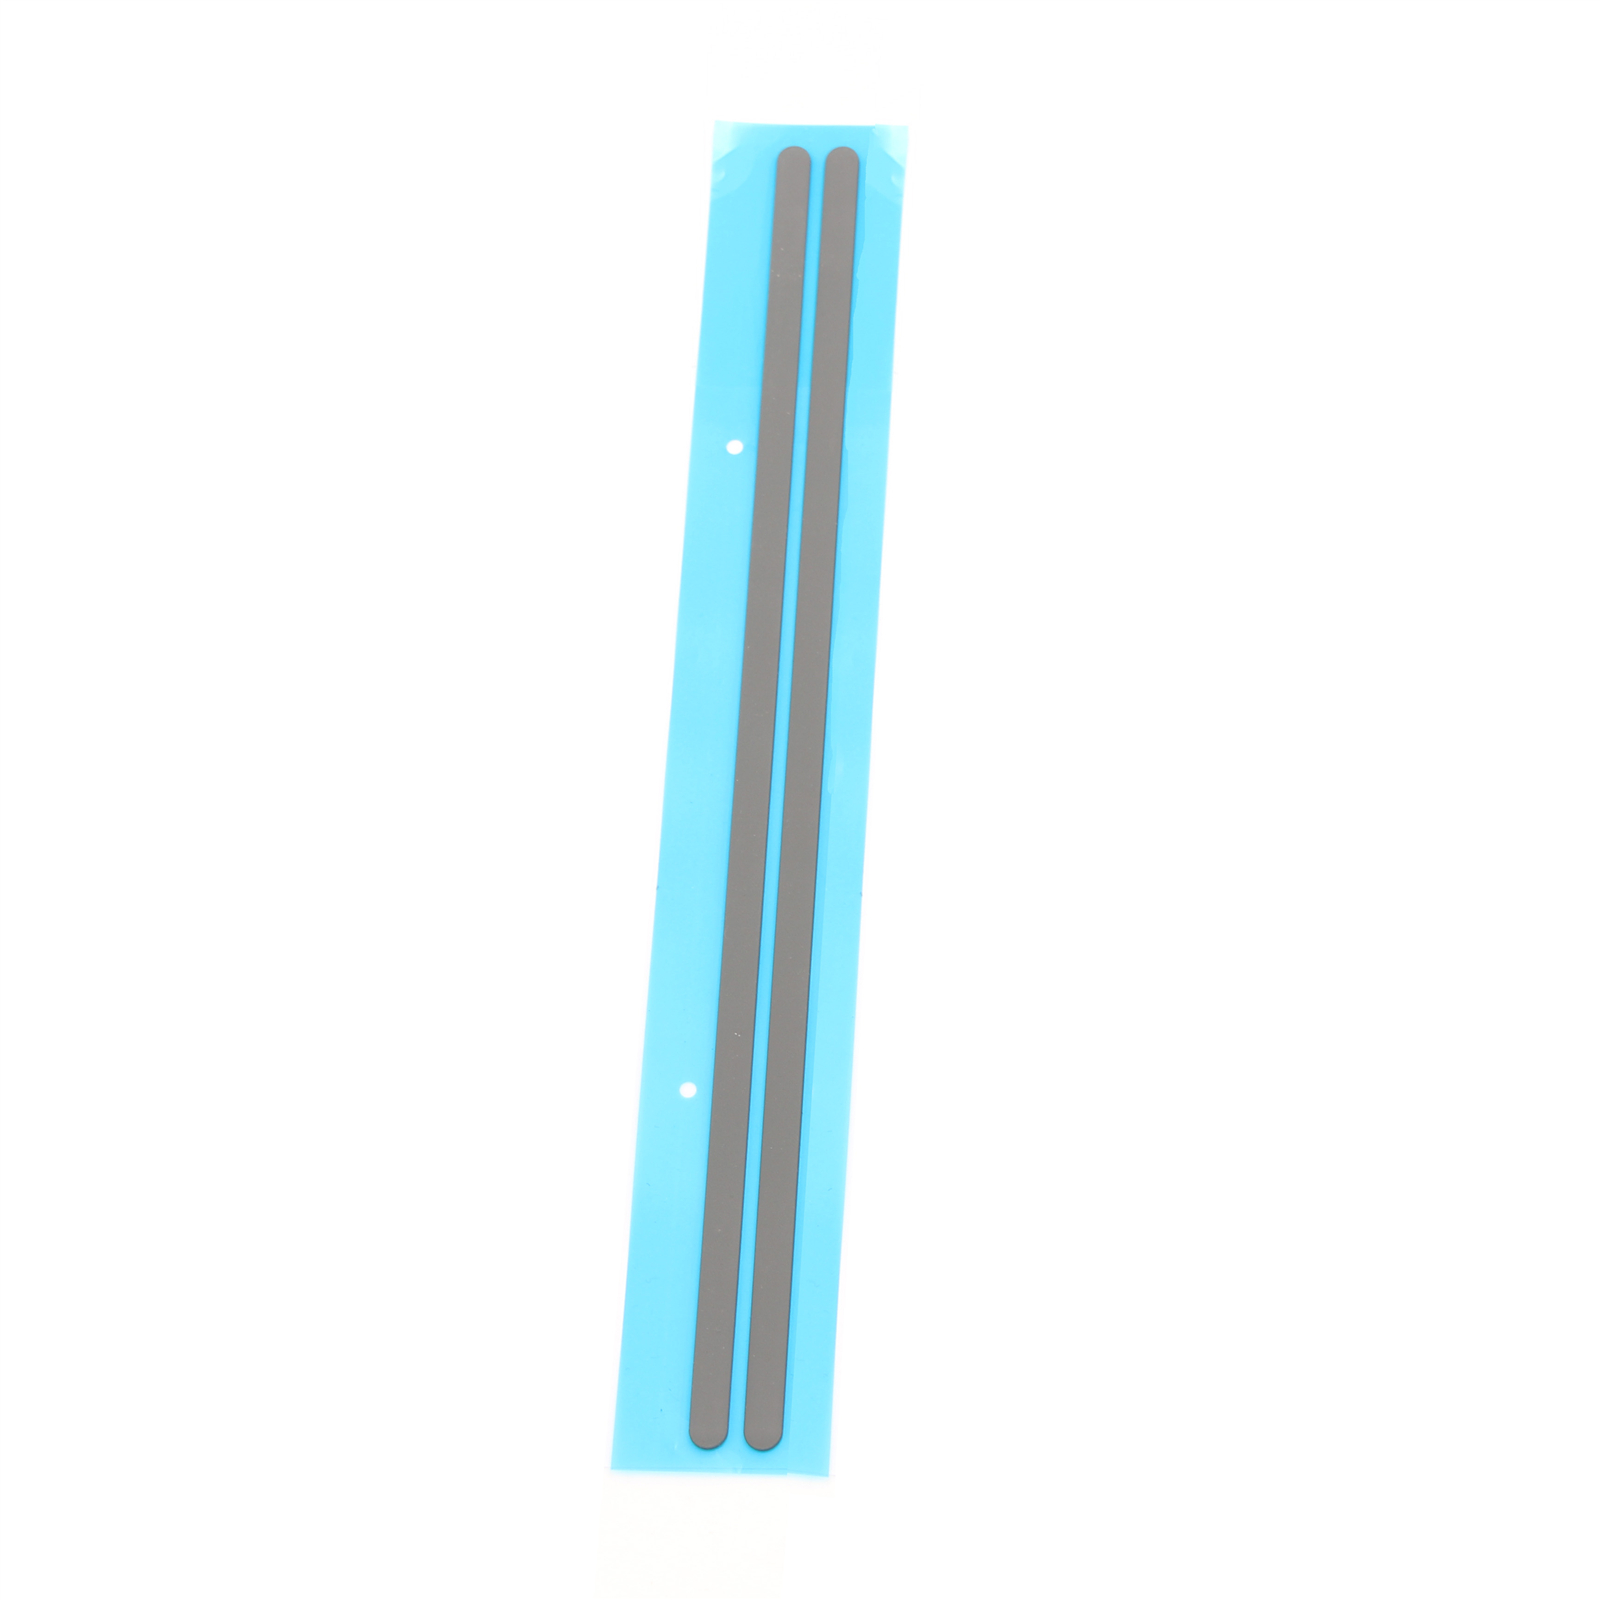 Lot of Rubber Feet Strips for Dell Inspiron 5368 5378 7368 7460 7569 13-5 13-7